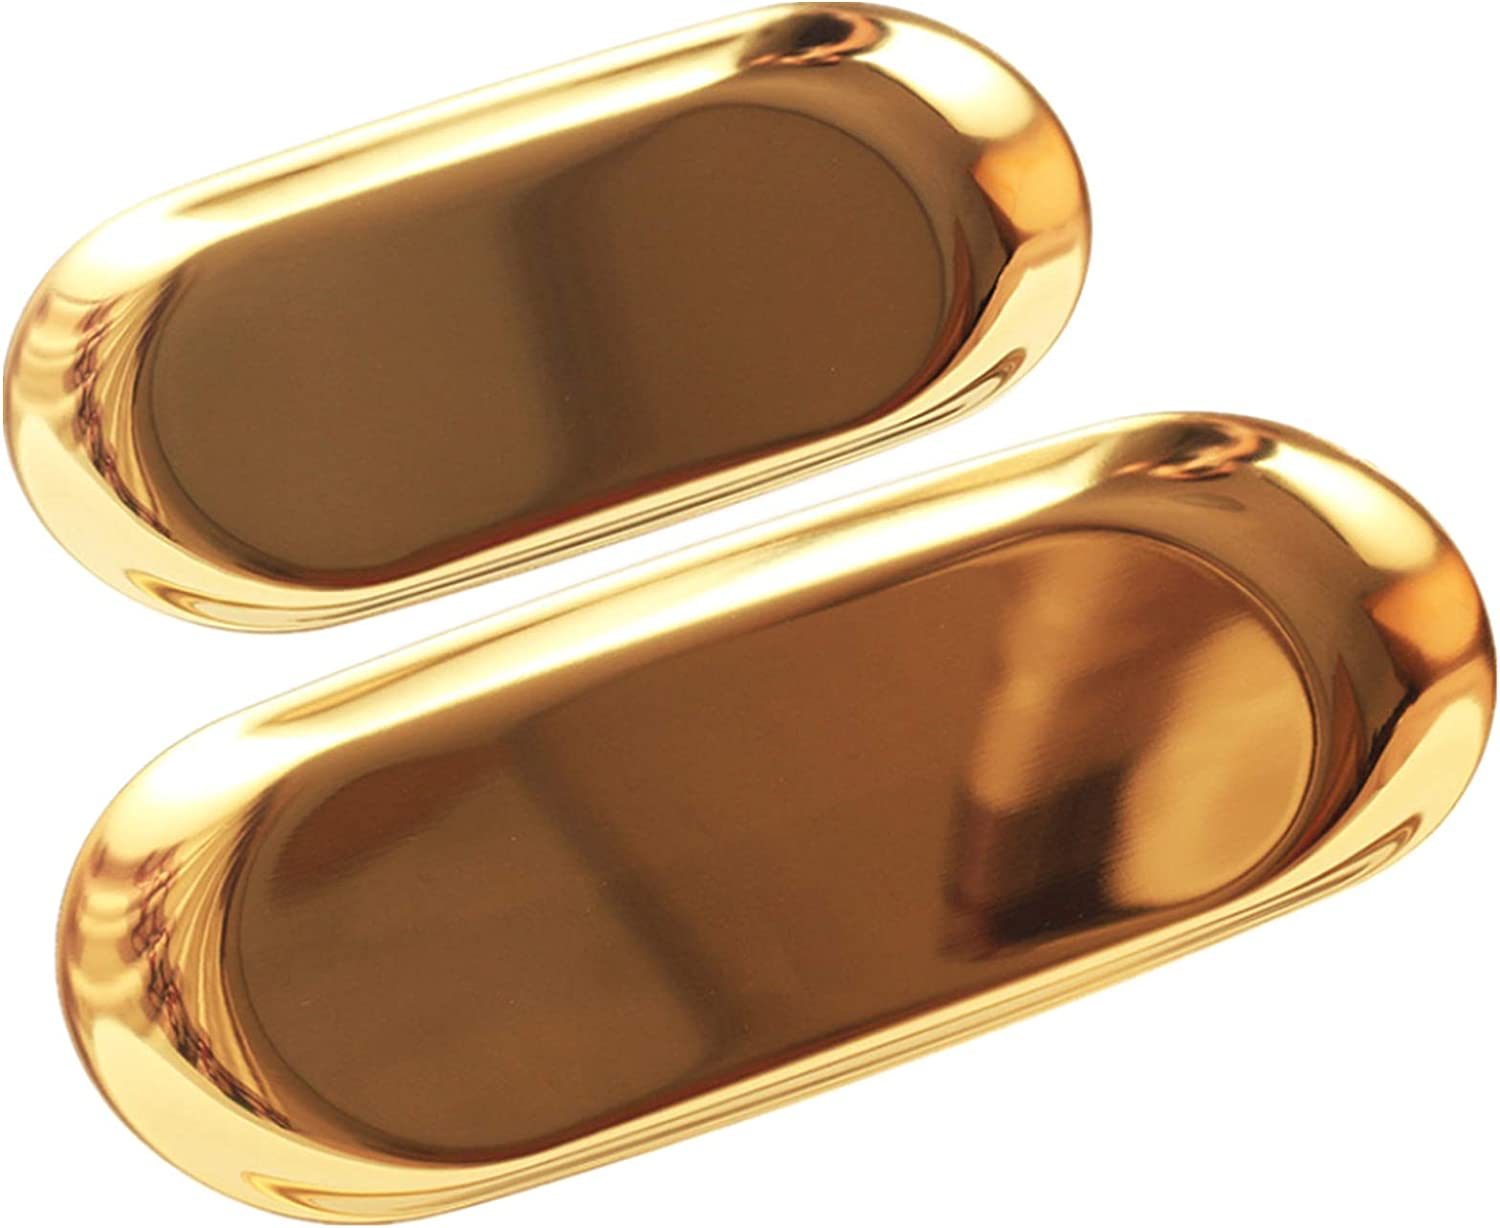 Stainless Steel Towel Tray 2 Pcs Cosmetics Jewelry Organizer Metal Oval Decorative Storage Trays Dish Plate Tea Fruit Candy Food Serving Tray Trinket Tray for Dressers Counter, Gold